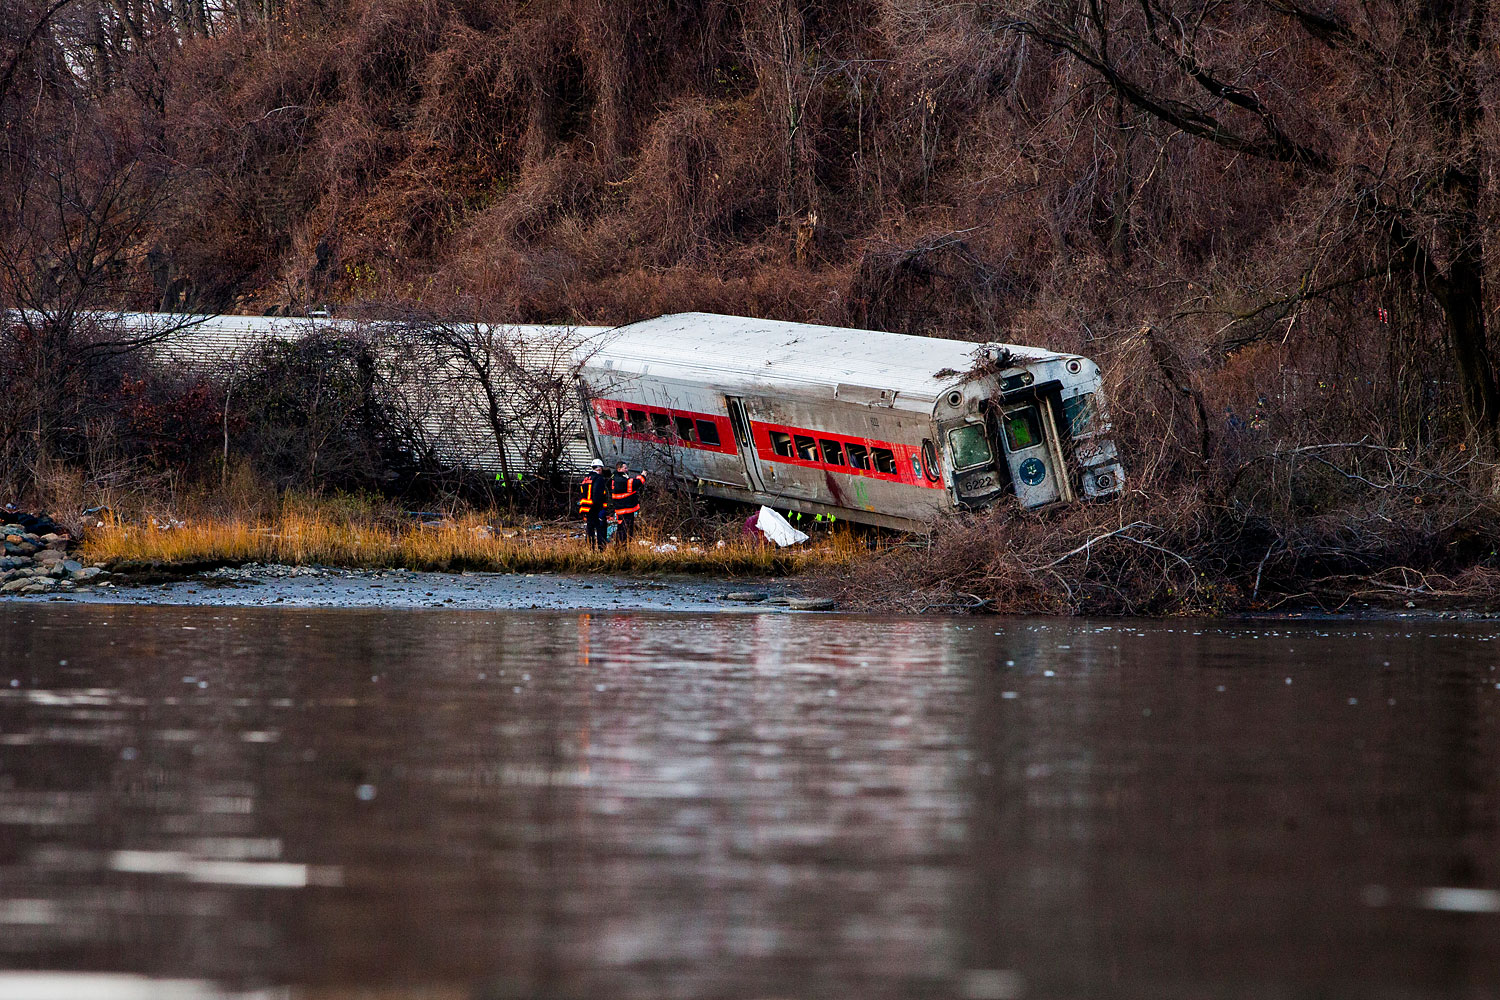 The wreckage of a Metro-North commuter train lies on its side after it derailed just north of the Spuyten Duyvil station December 1, 2013 in the Bronx borough of New York City.